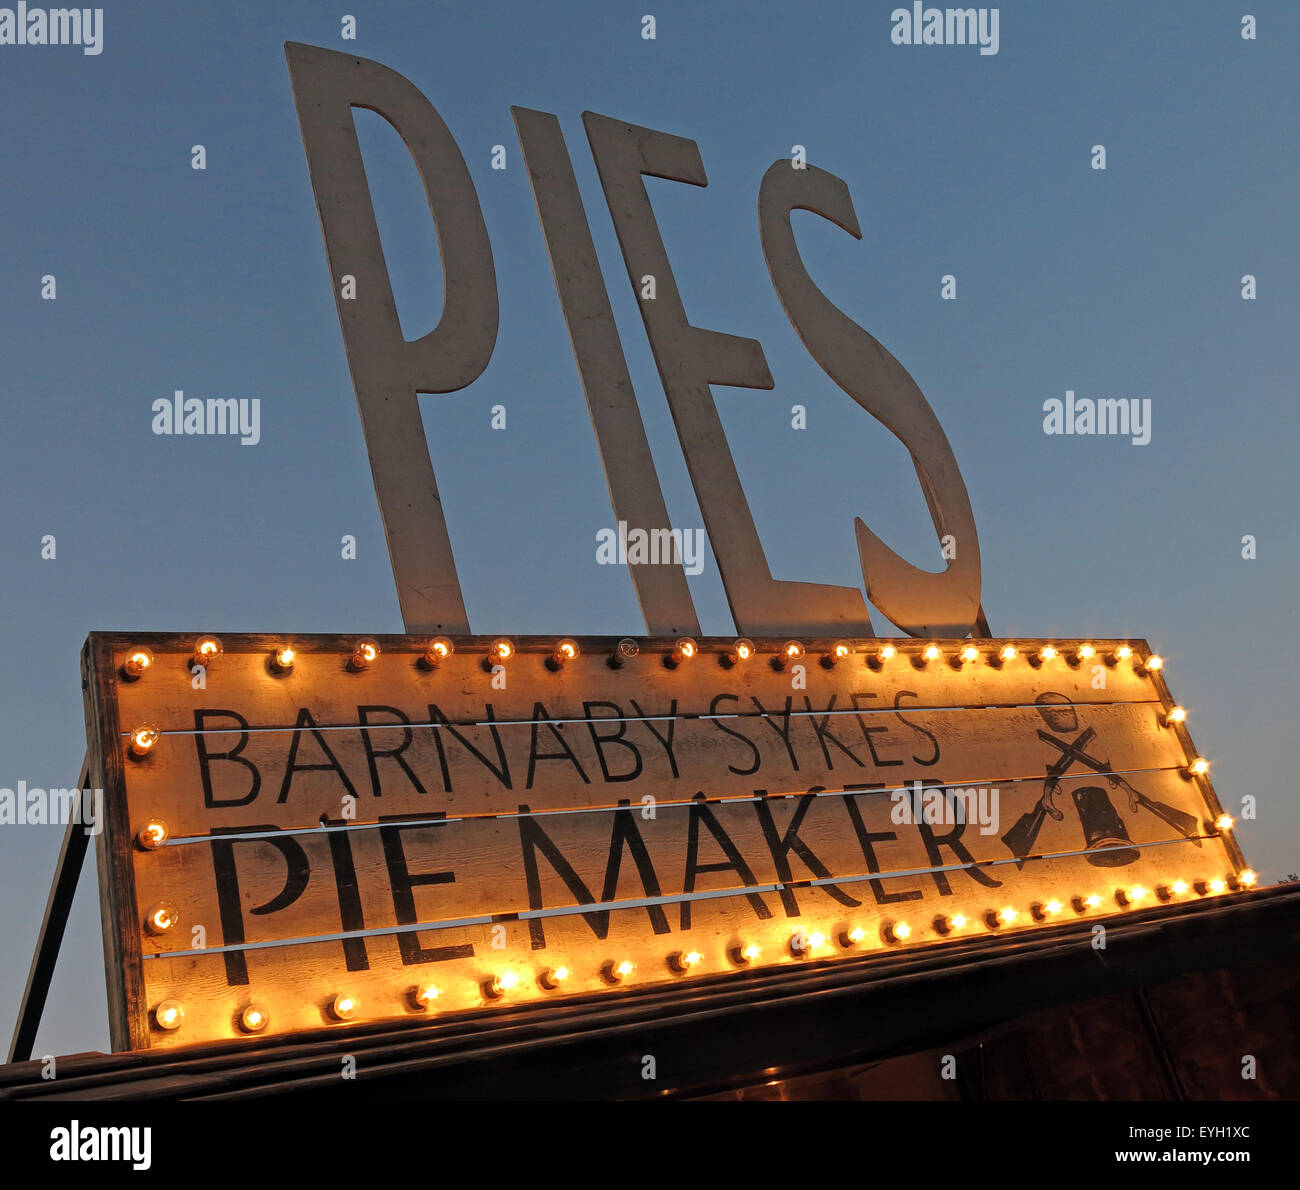 Handmade Artisan Pies on sale at a festival, England, UK - Stock Image